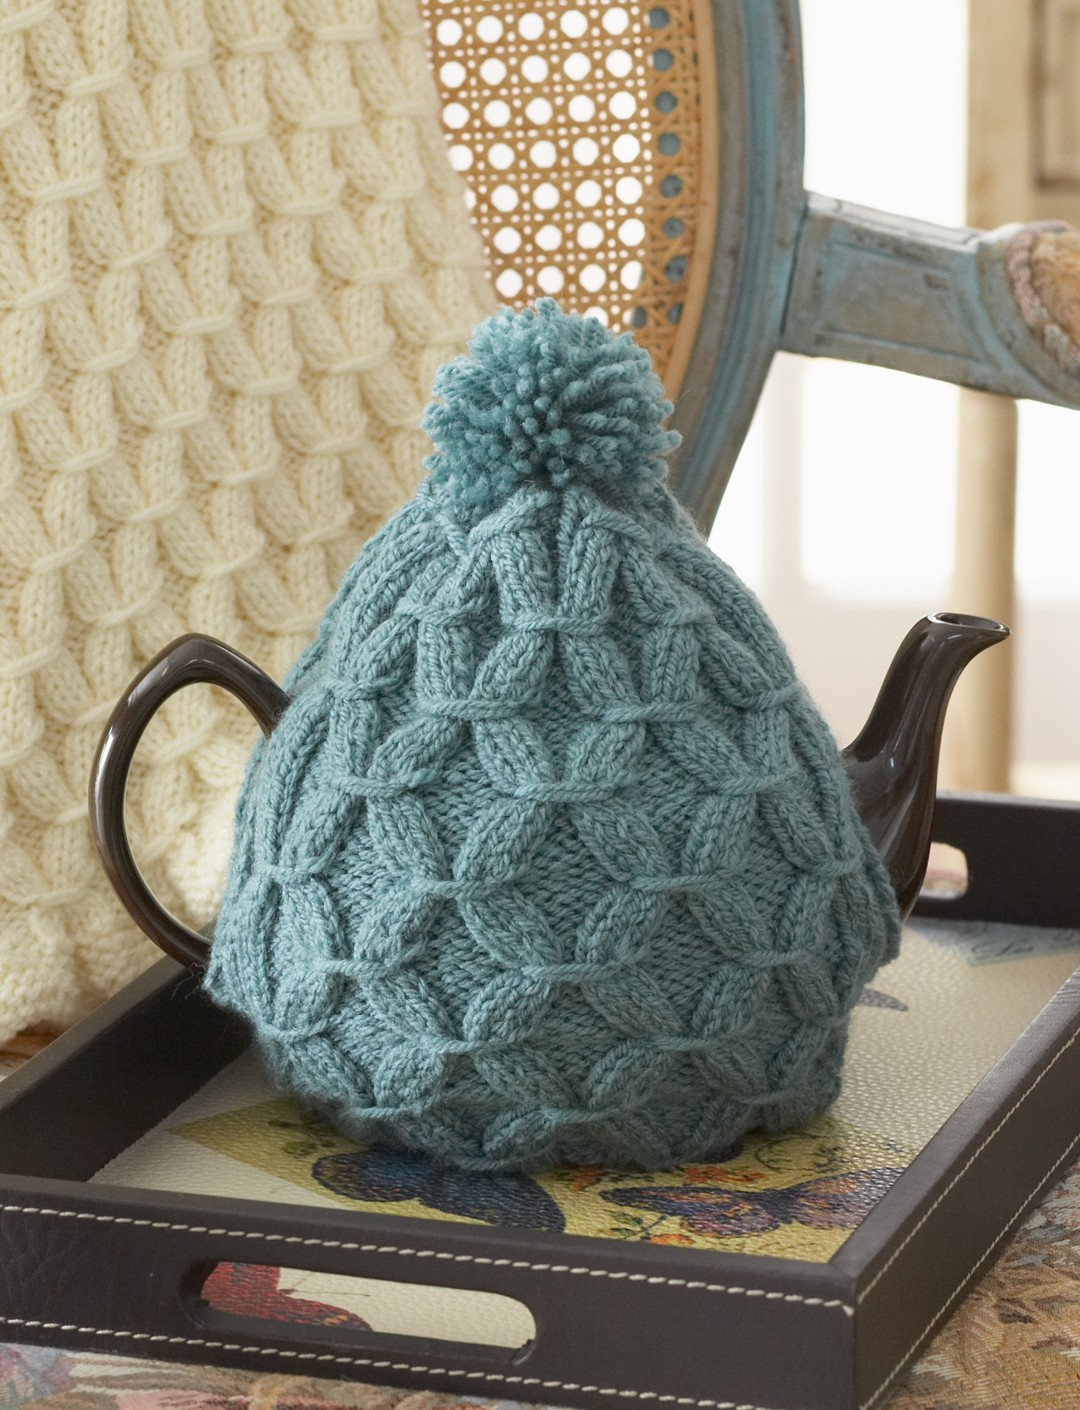 Knitted Teapot Cosy Patterns : Patons Cushy Smocked Throw and Tea Cozy, Knit Pattern Yarnspirations